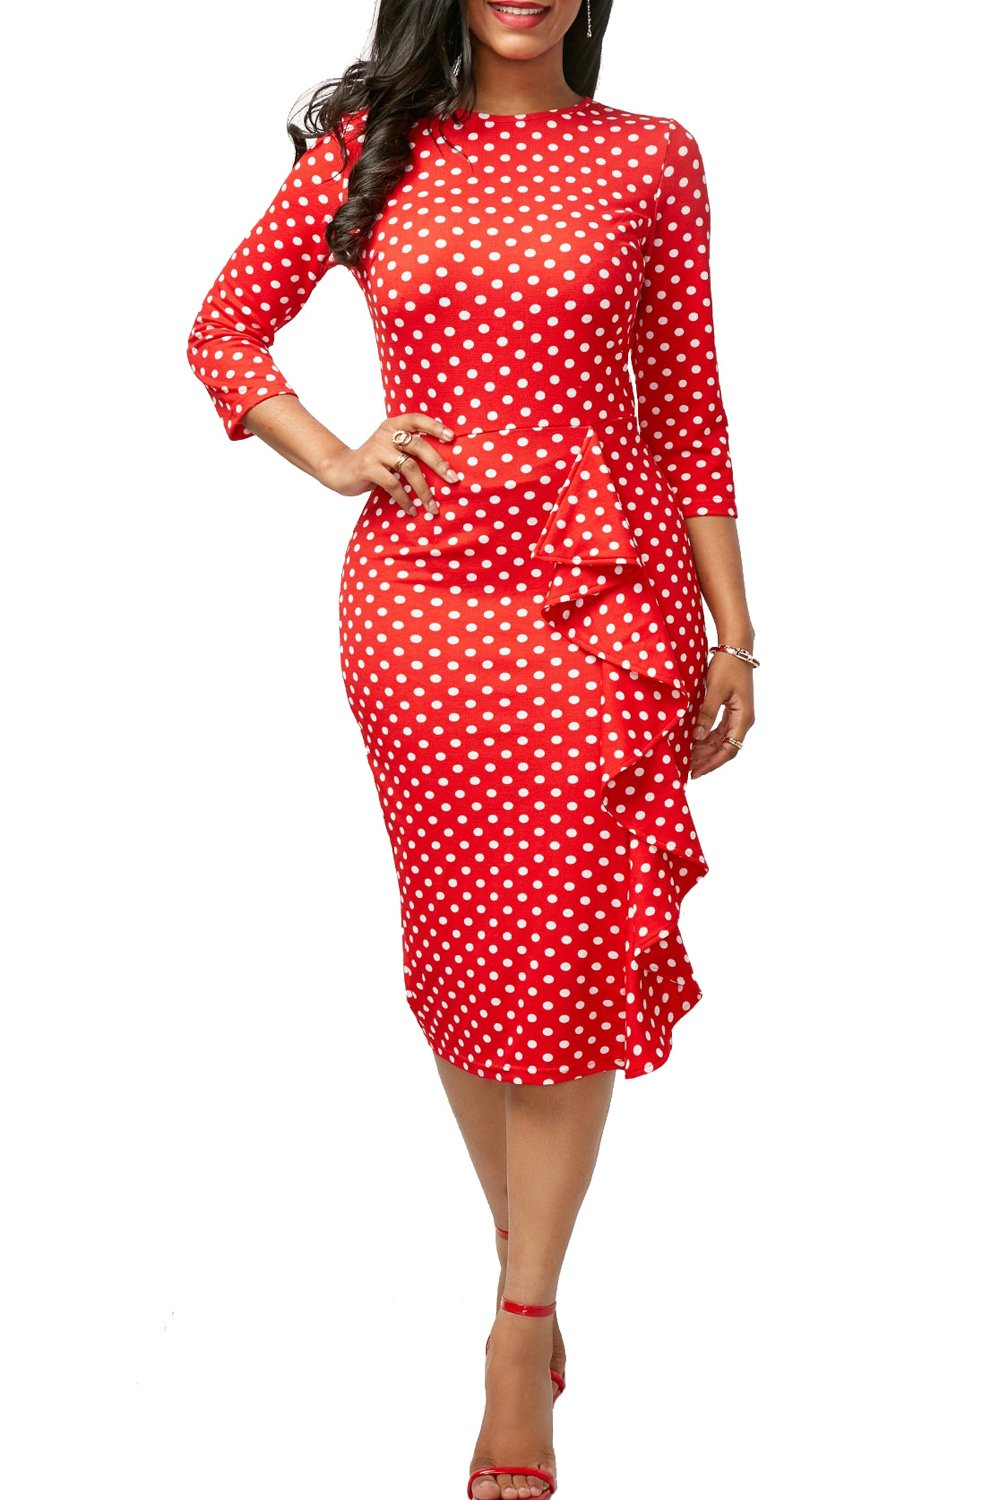 Yacun Women Polka Dot Long Sleeve Midi Bodycon Pencil Work Dress CAMCH5426